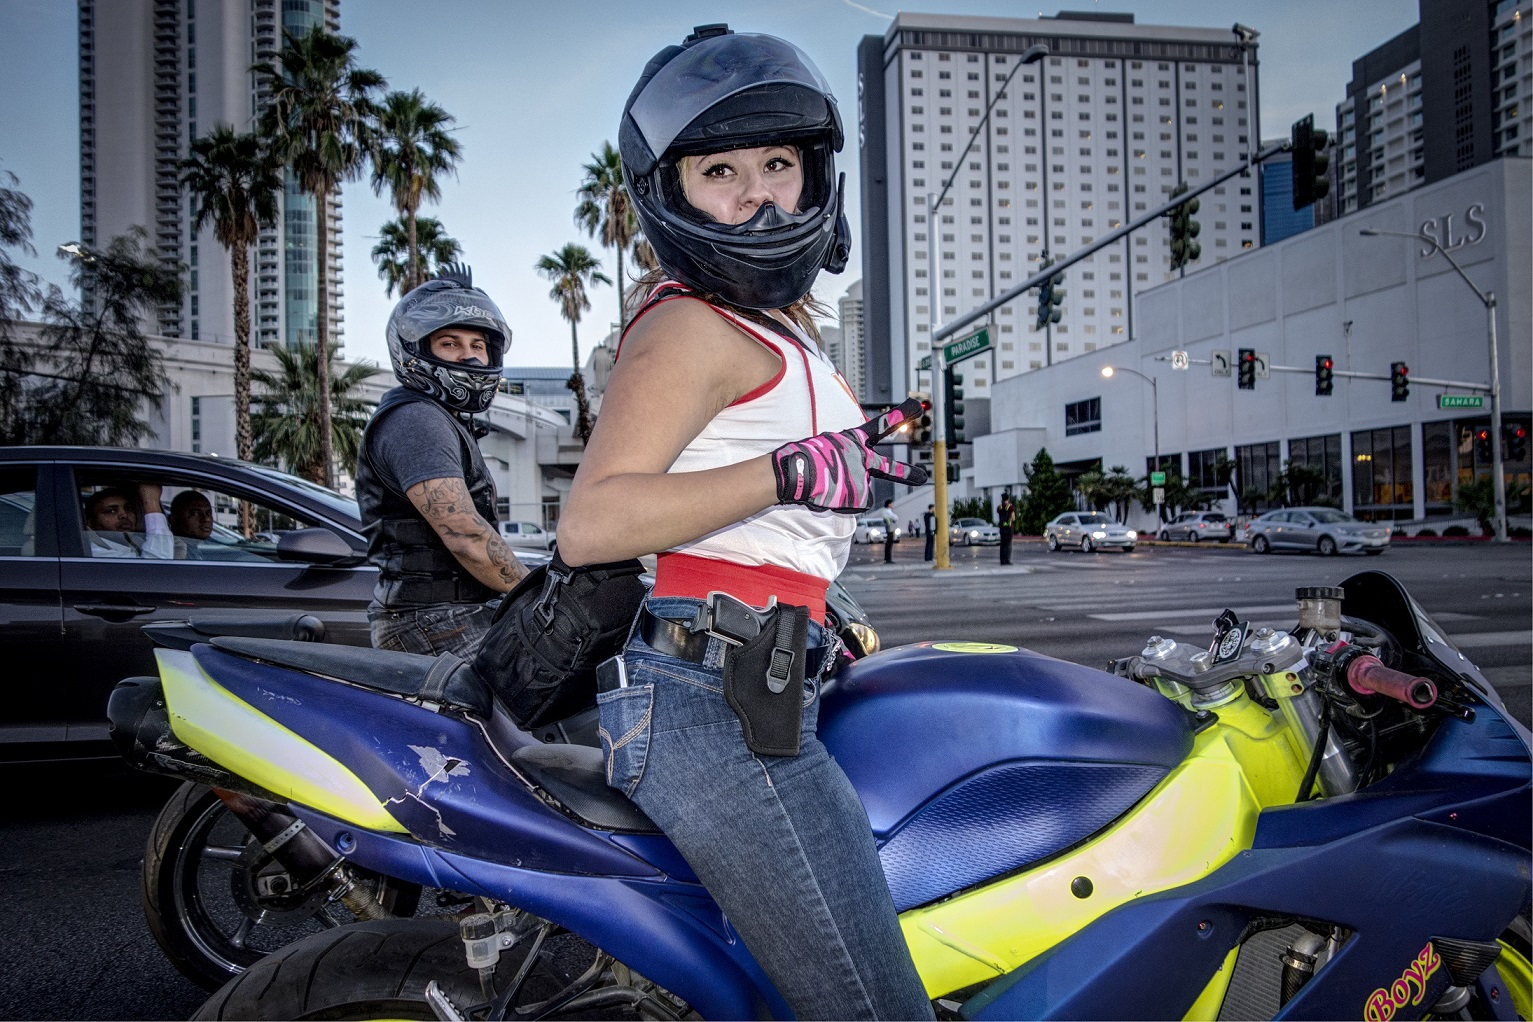 open-carry-las-vegas-2016-daniel-d-teoli-jr lr.jpg